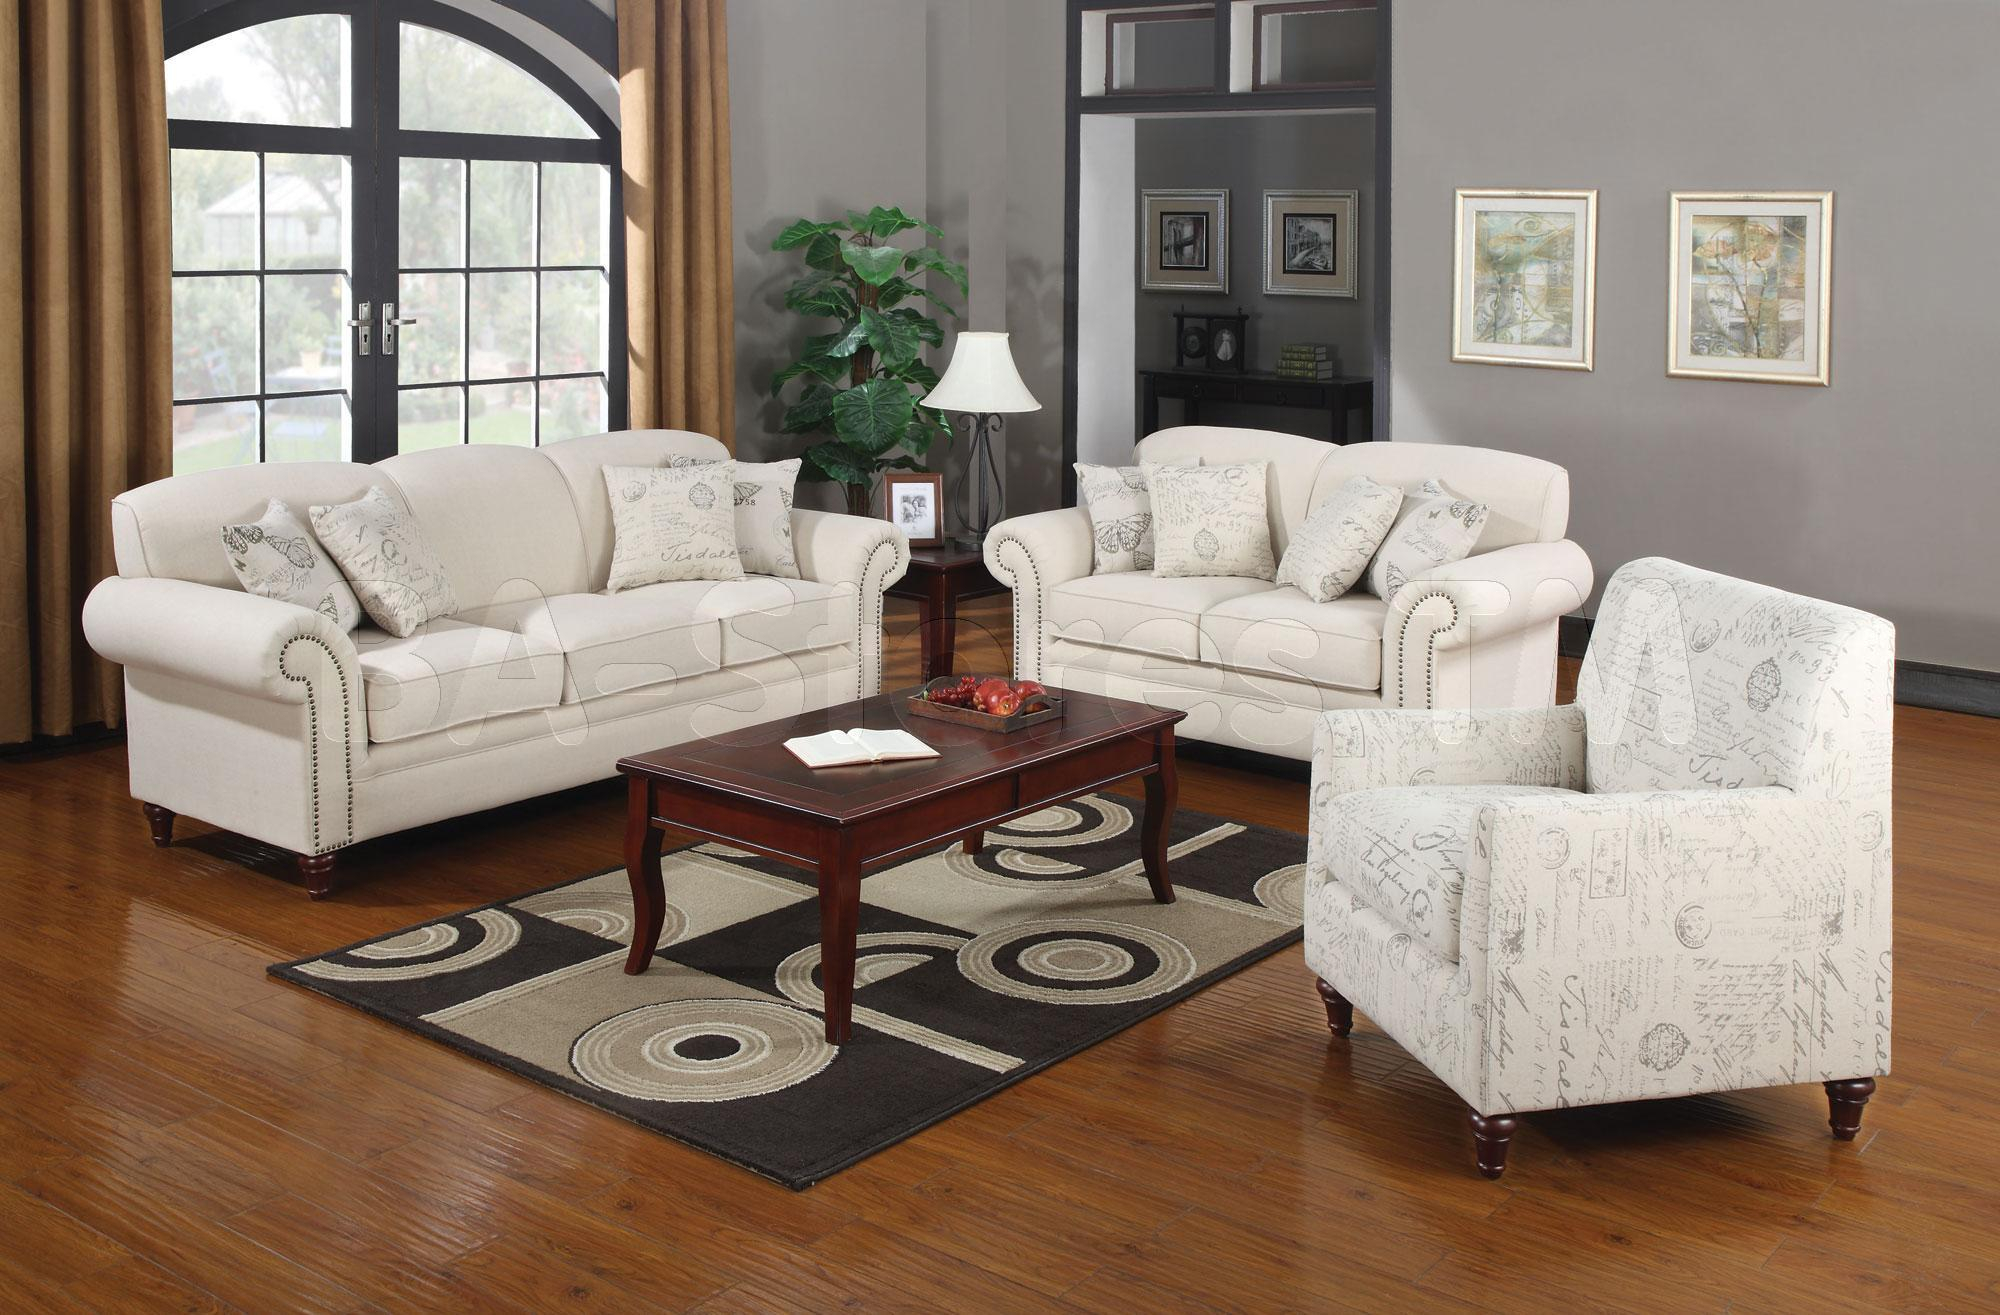 White Couch Set Elegant Off Leather Living Room Furniture Baci pertaining to 15 Smart Ideas How to Makeover Living Room Sets Free Shipping